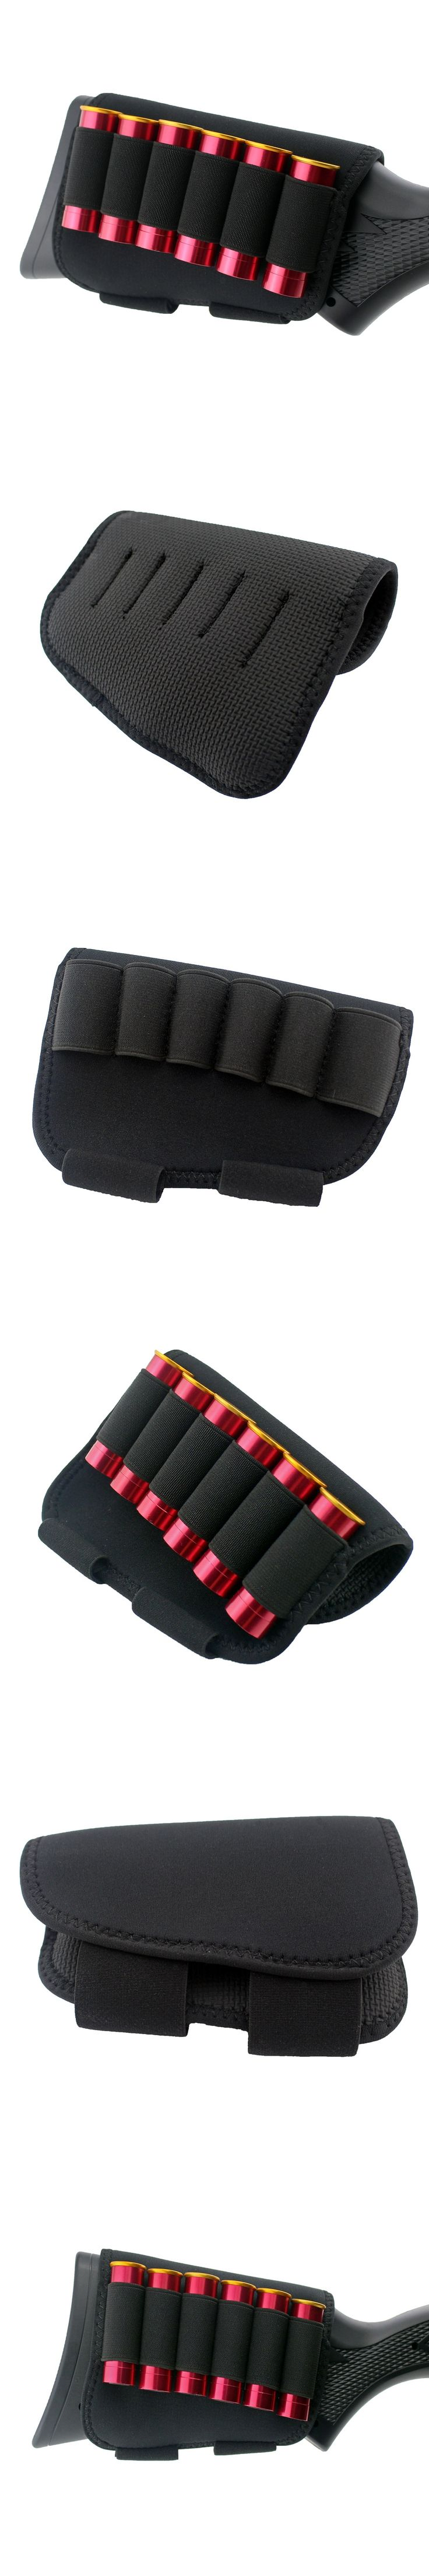 Tactical Buttstock Cheek Rest Pouch with 6 Rounds 12 20 Gauge Shotgun Shell Holder